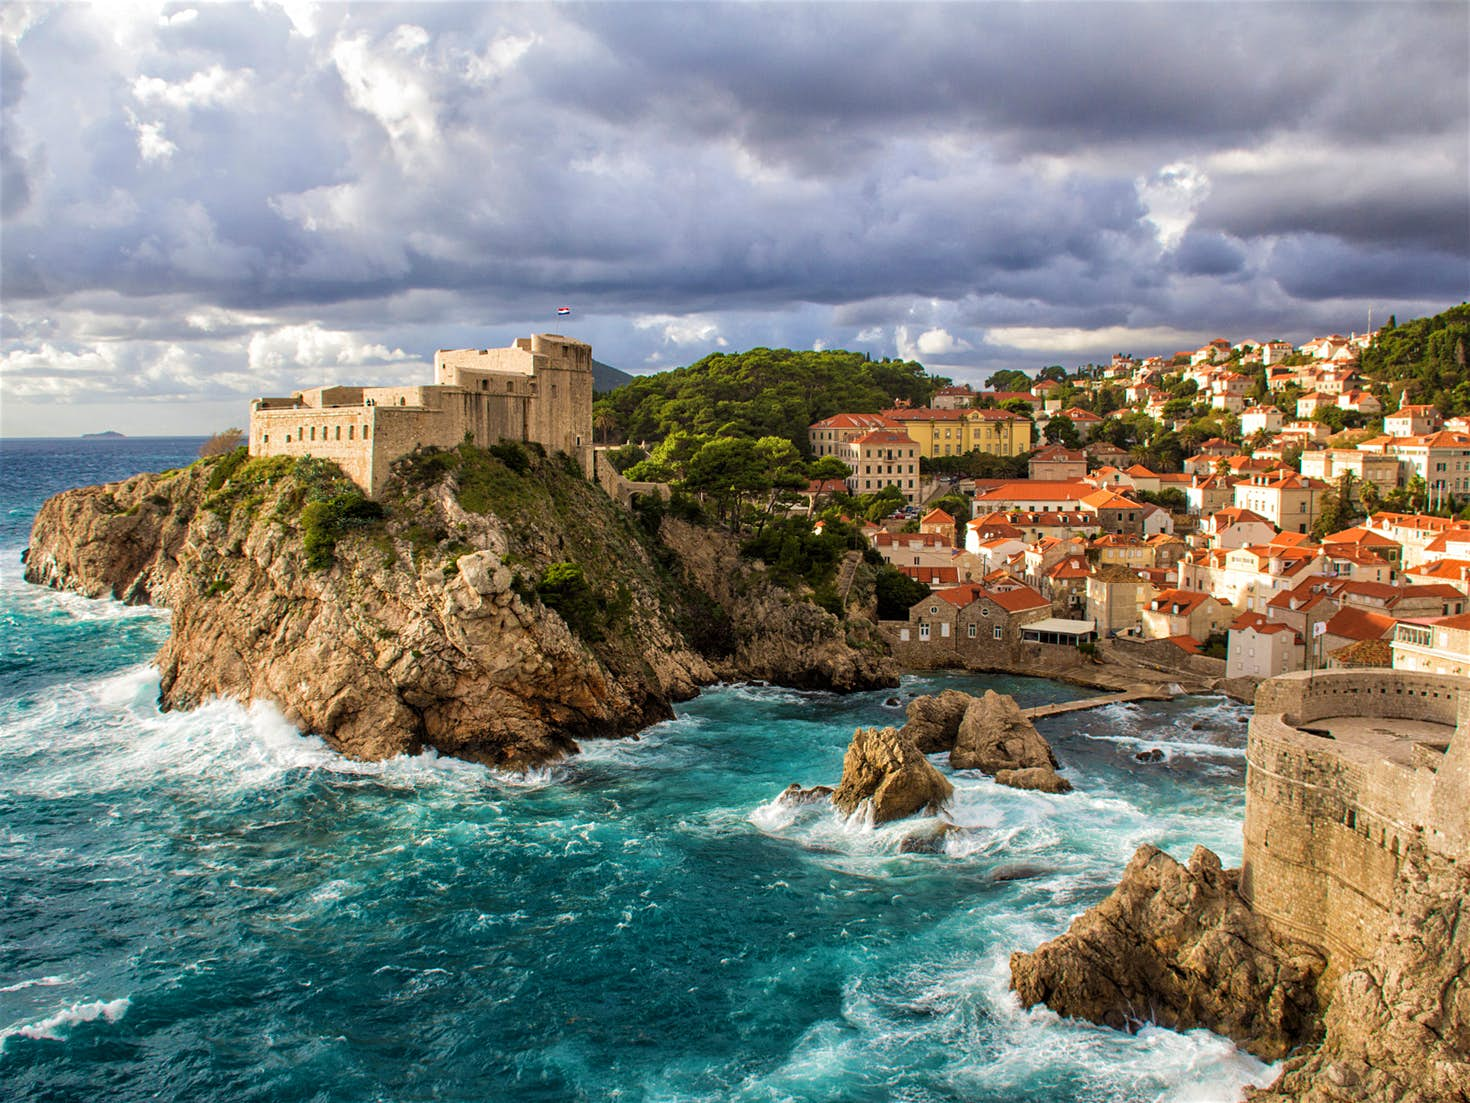 Dubrovnik's picturesque stone walls and streets make it a perfect stand-in for King's Landing